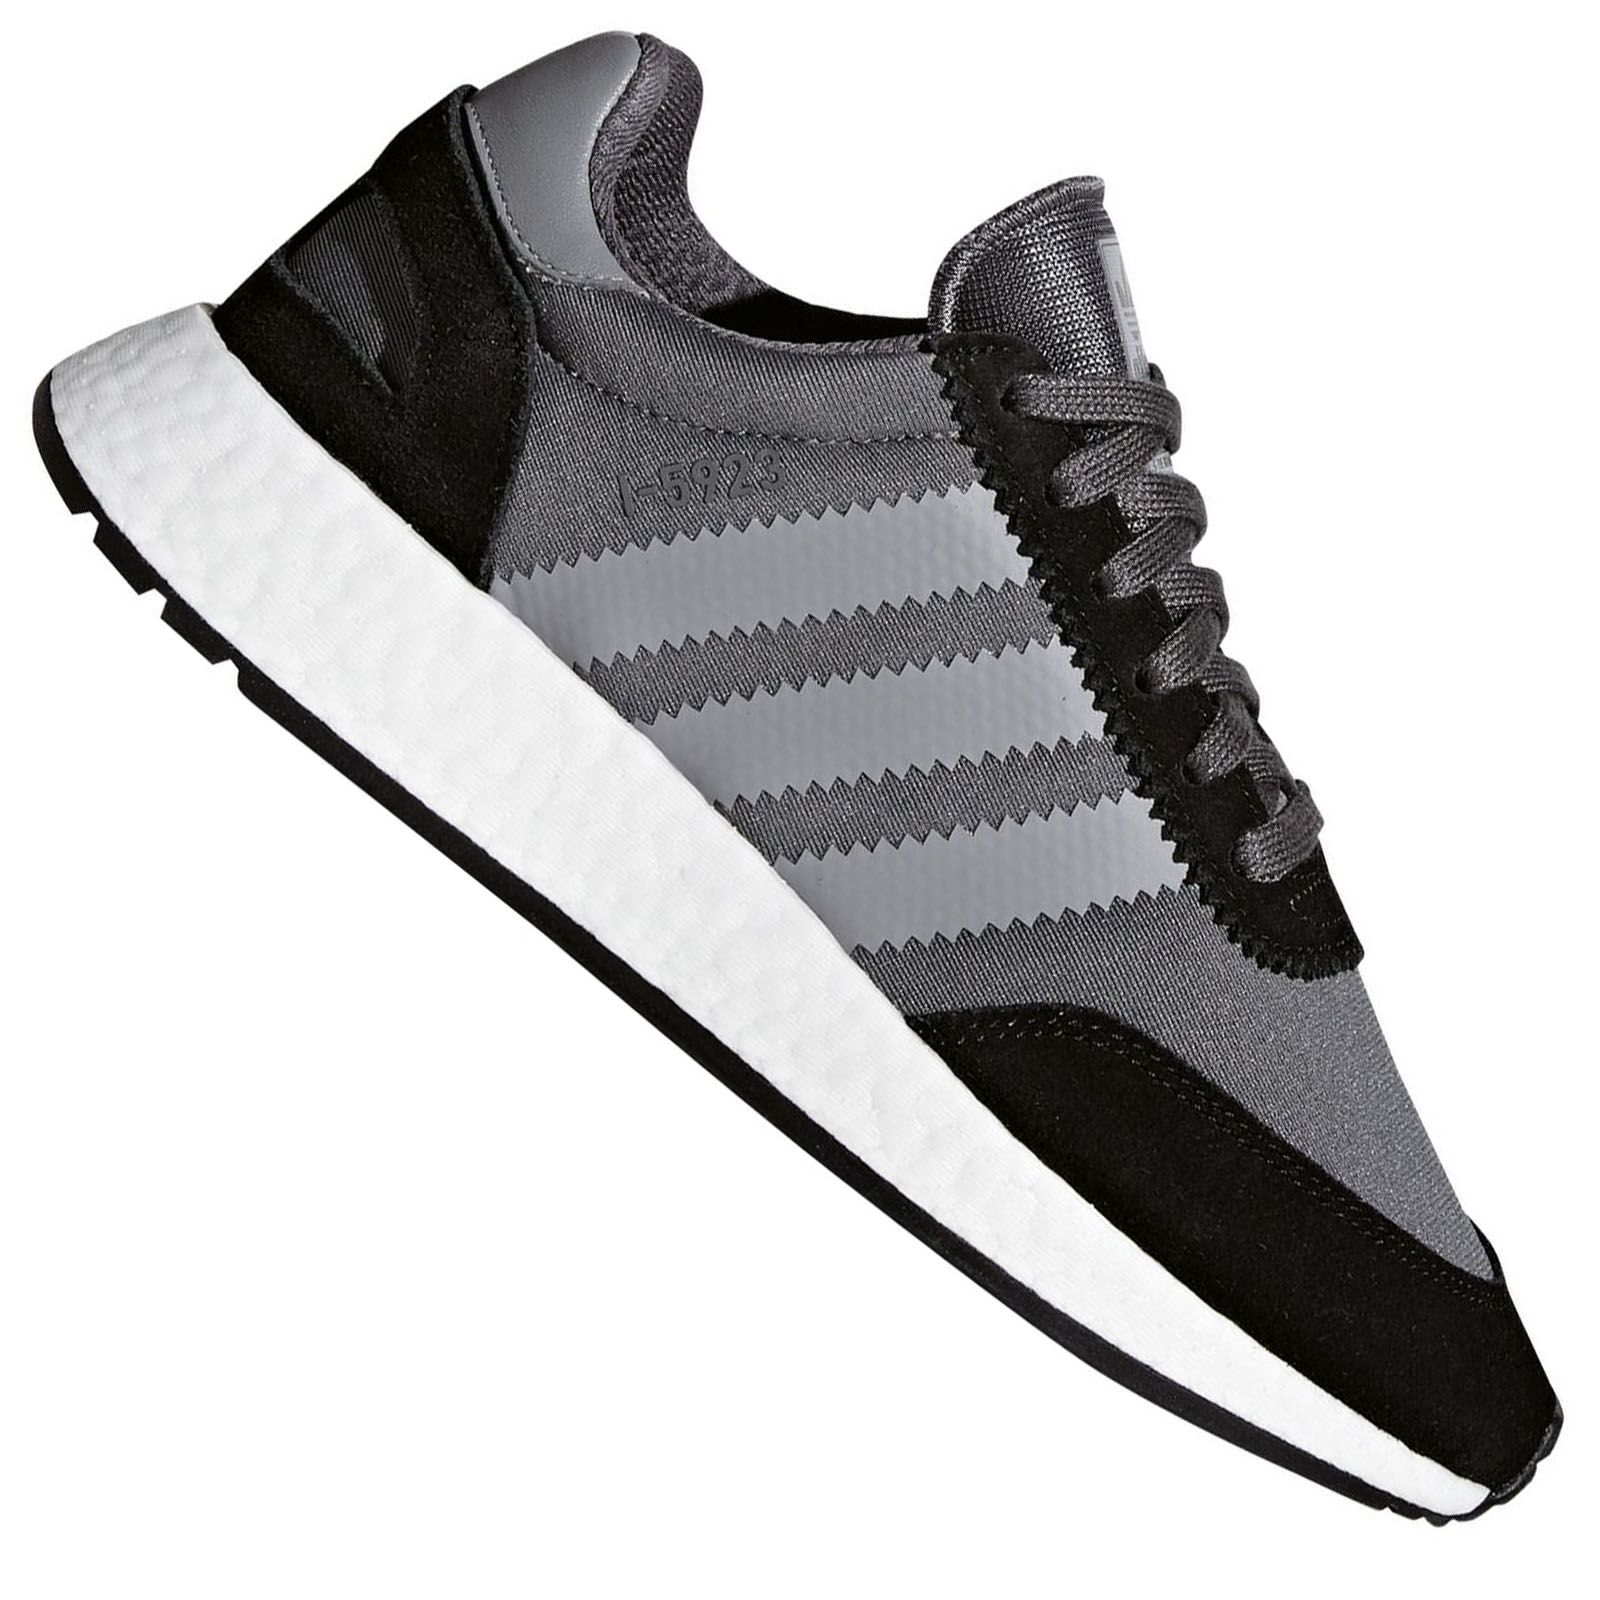 Details about Adidas iniki Runner I 5923 Womens Sneakers Trainers Shoes Black Dark Grey show original title